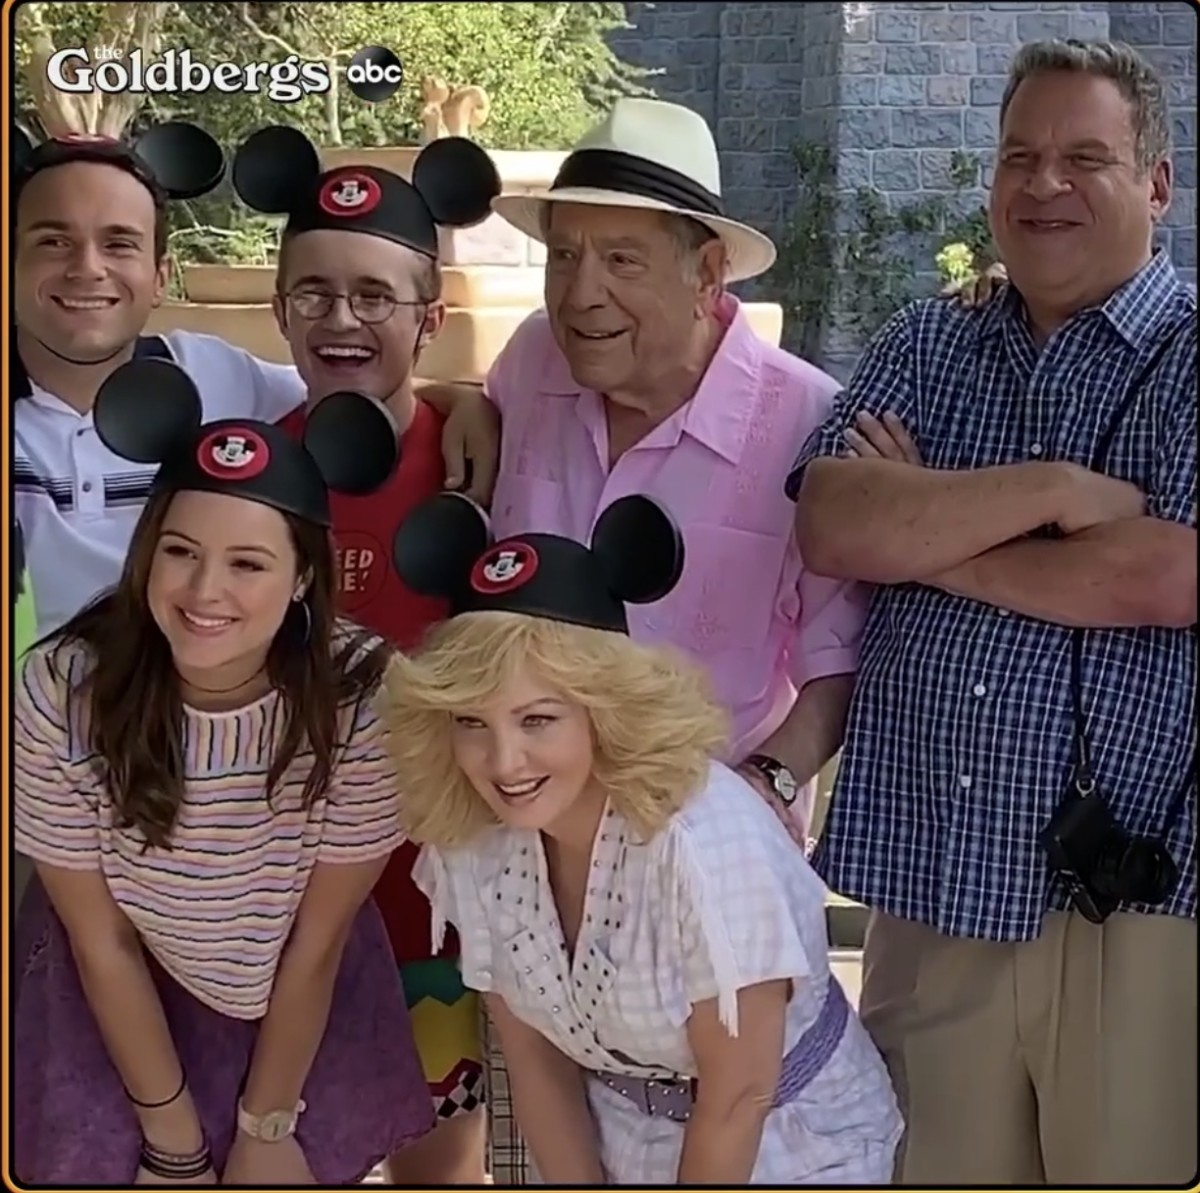 ABC's 'The Goldbergs' Head to Disneyland in the Show's Seventh Season Premiere, Wednesday, Sept. 25 1